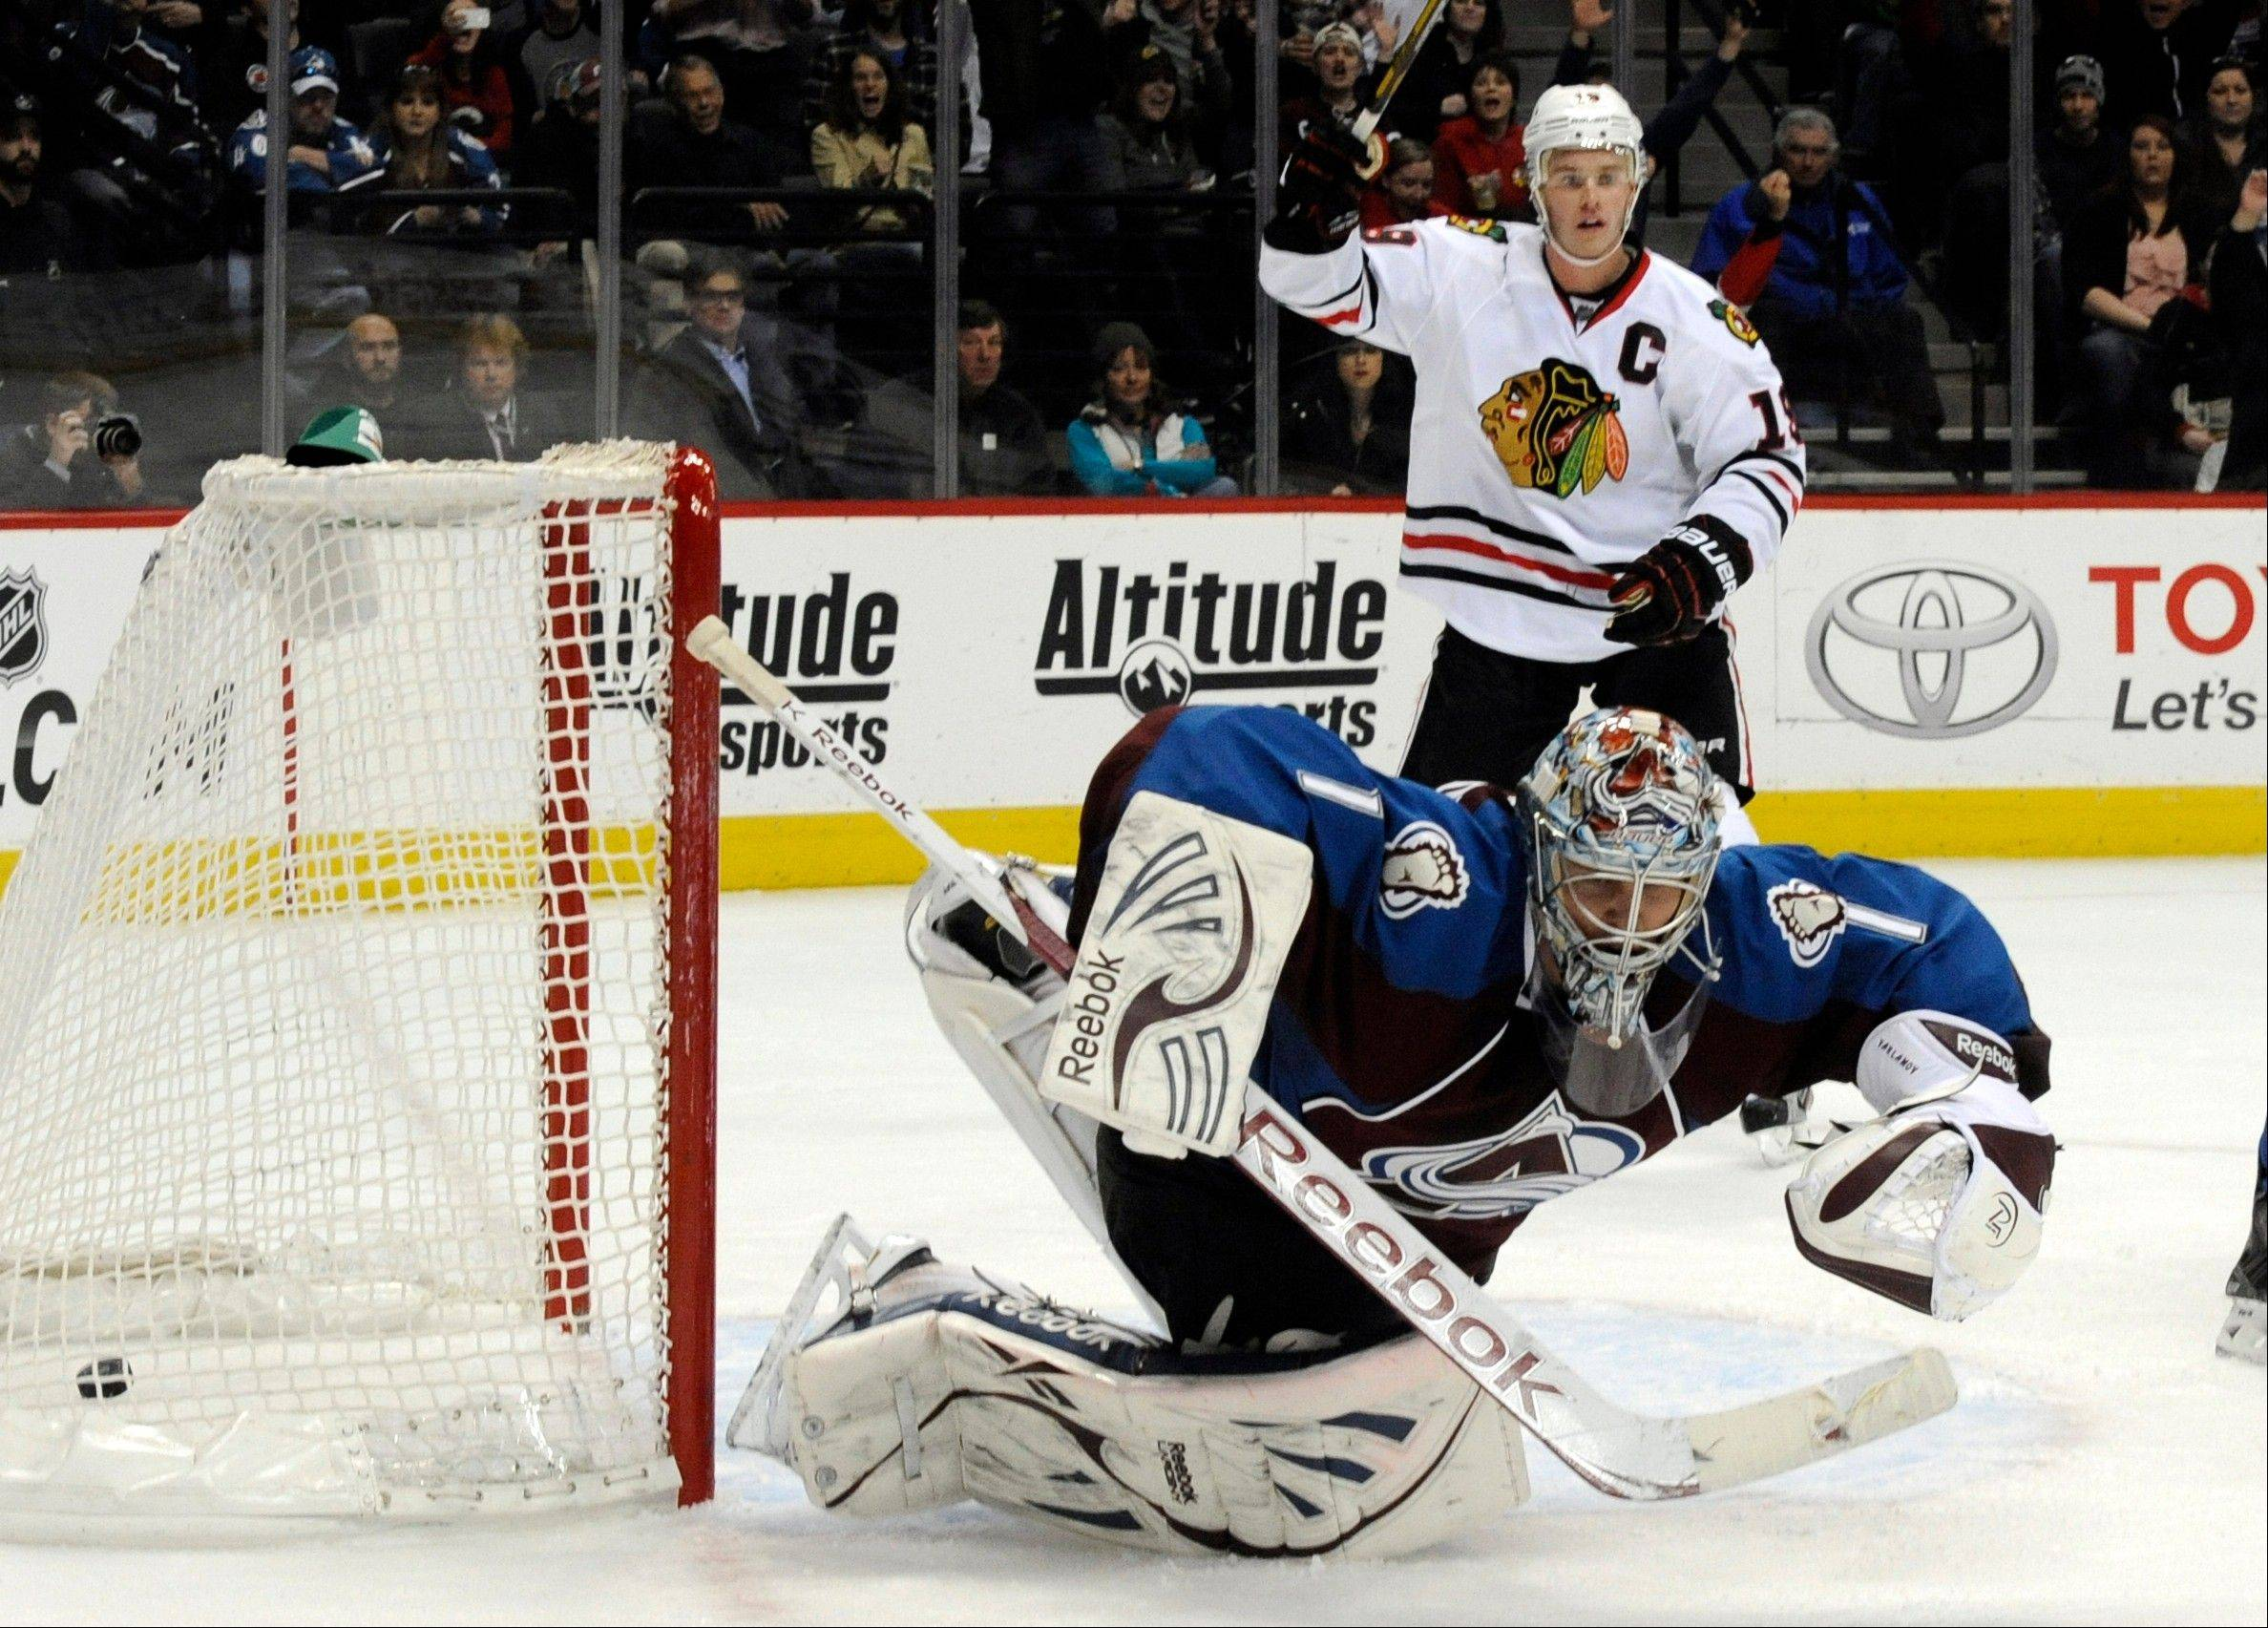 Colorado Avalanche goalie Semyon Varlamov (1), lets the puck slip past for a goal as Chicago Blackhawks center Jonathan Toews (19) celebrates during the second period .